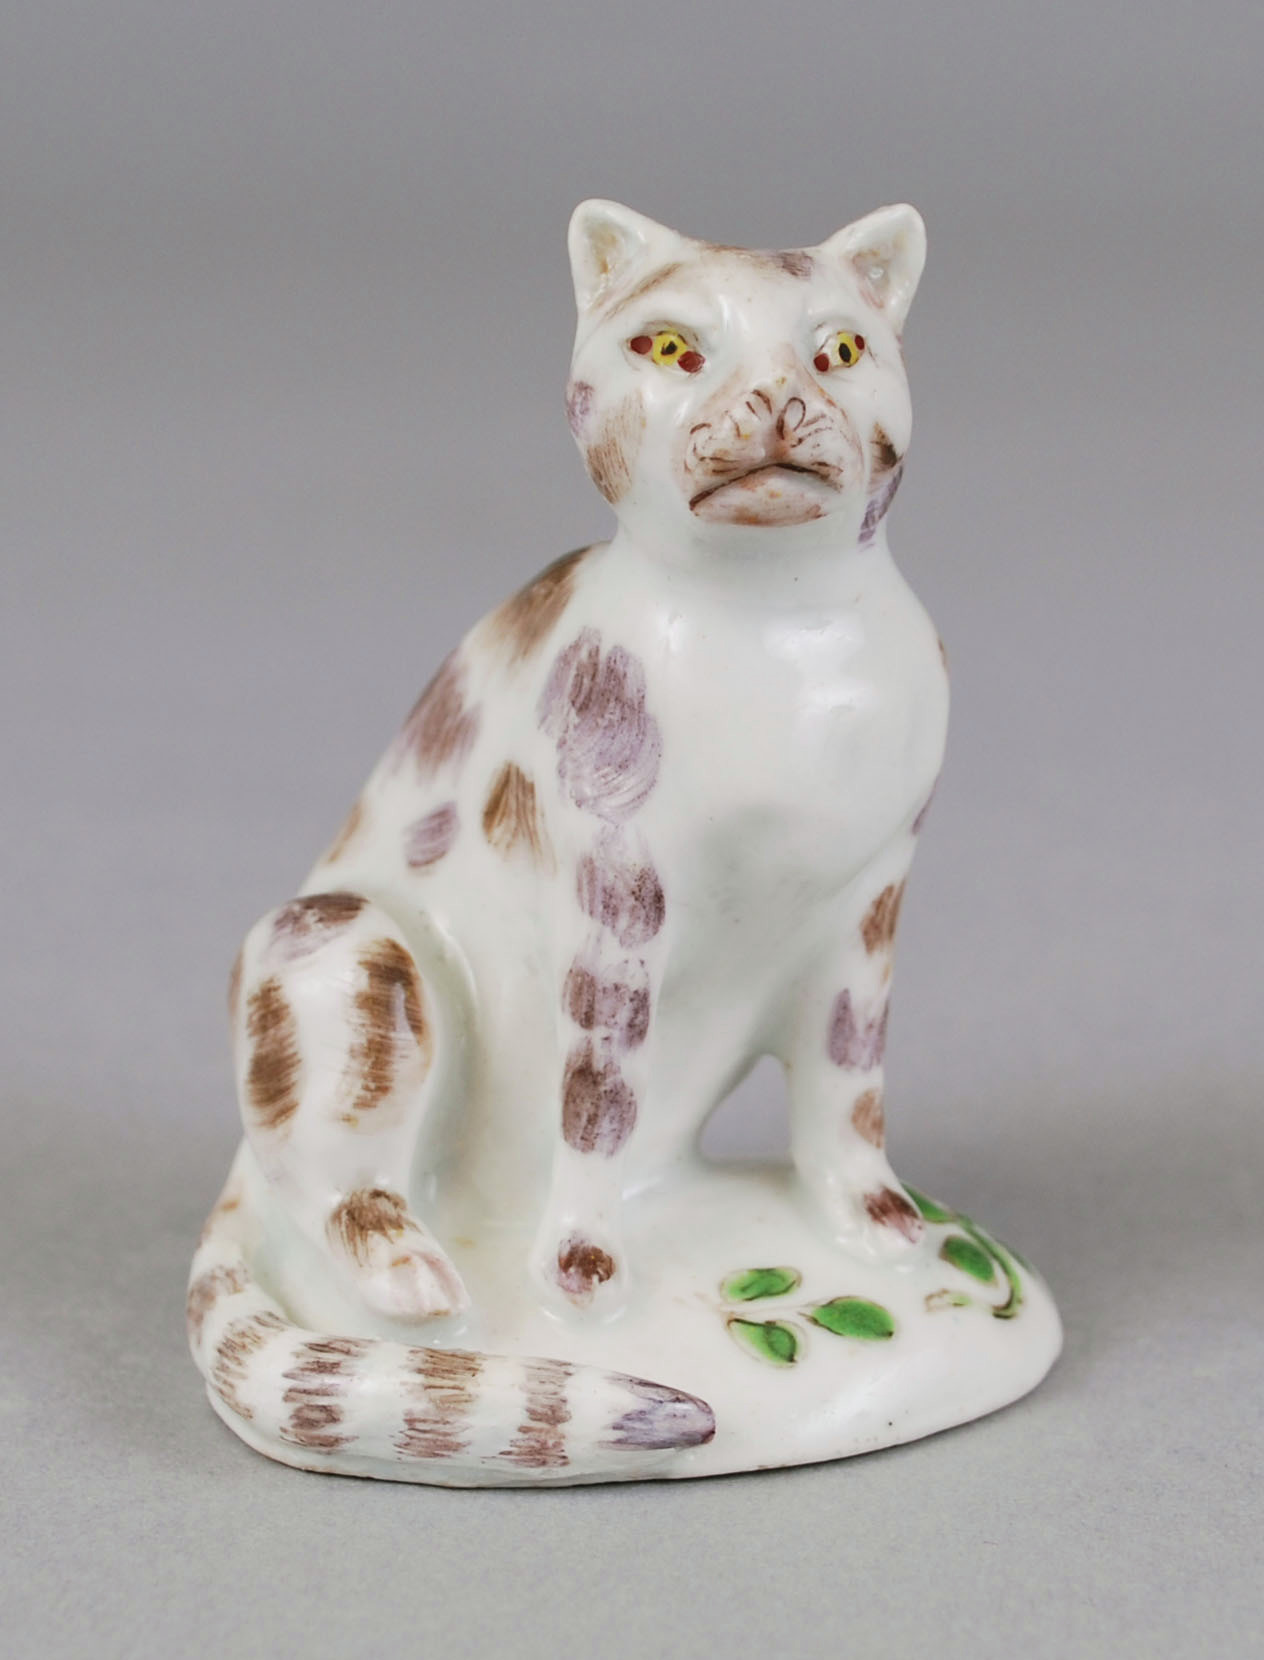 Small seated Bow porcelain cat of white color with brown patches. The eyes are painted yellow and paws have black lines for nails. The tail curves around next to the left of the feet. The cat sits with one foot slightly away from the body, on a circular base with painted flowers and green vines.